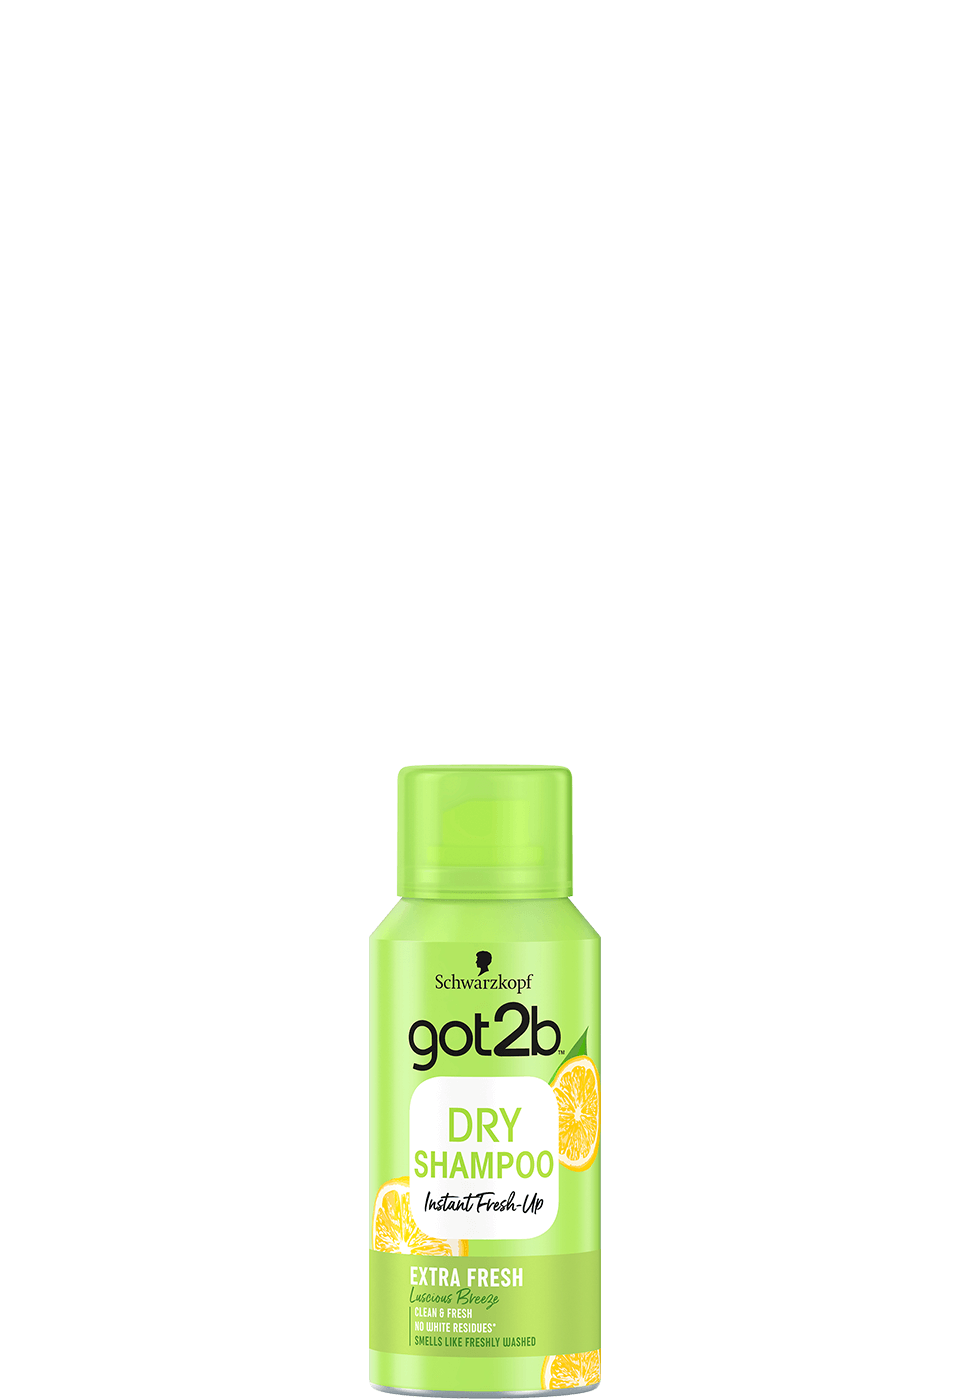 got2b_com_dry_shampoo_extra_fresh_small_970x1400